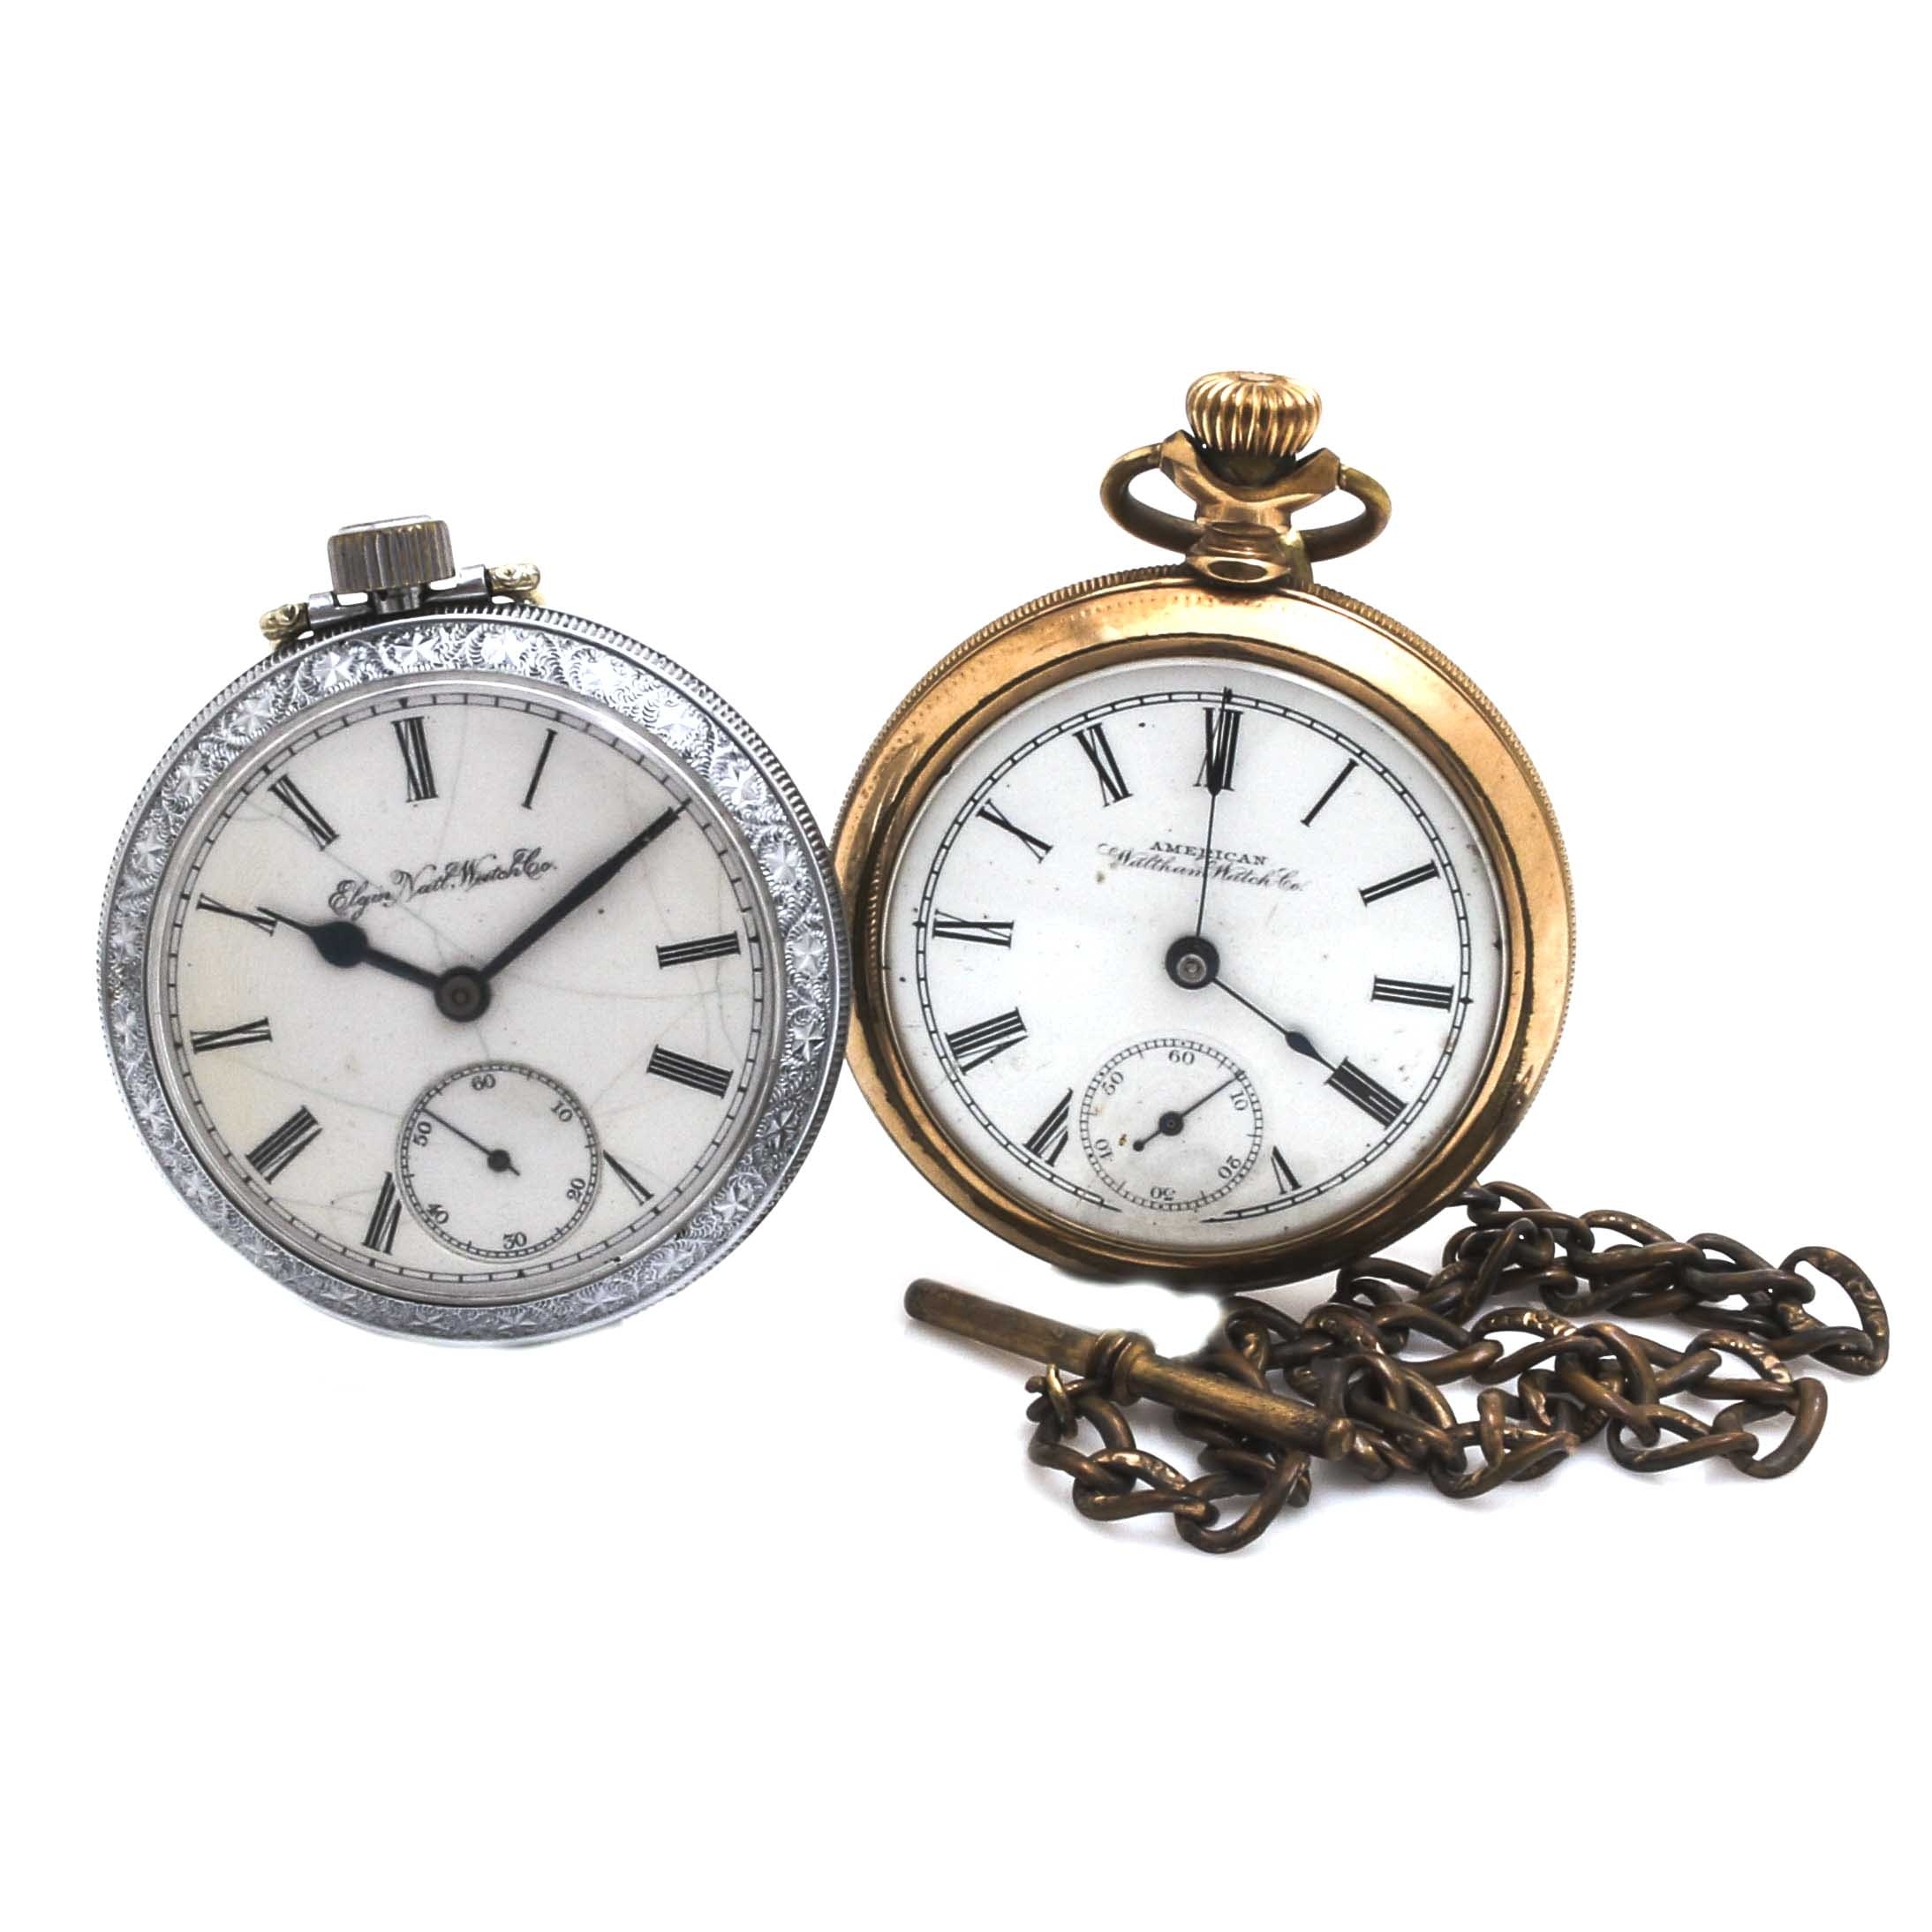 Pair of American Waltham Watch Co. and Elgin Gold Filled and Silver Tone Pocket Watches